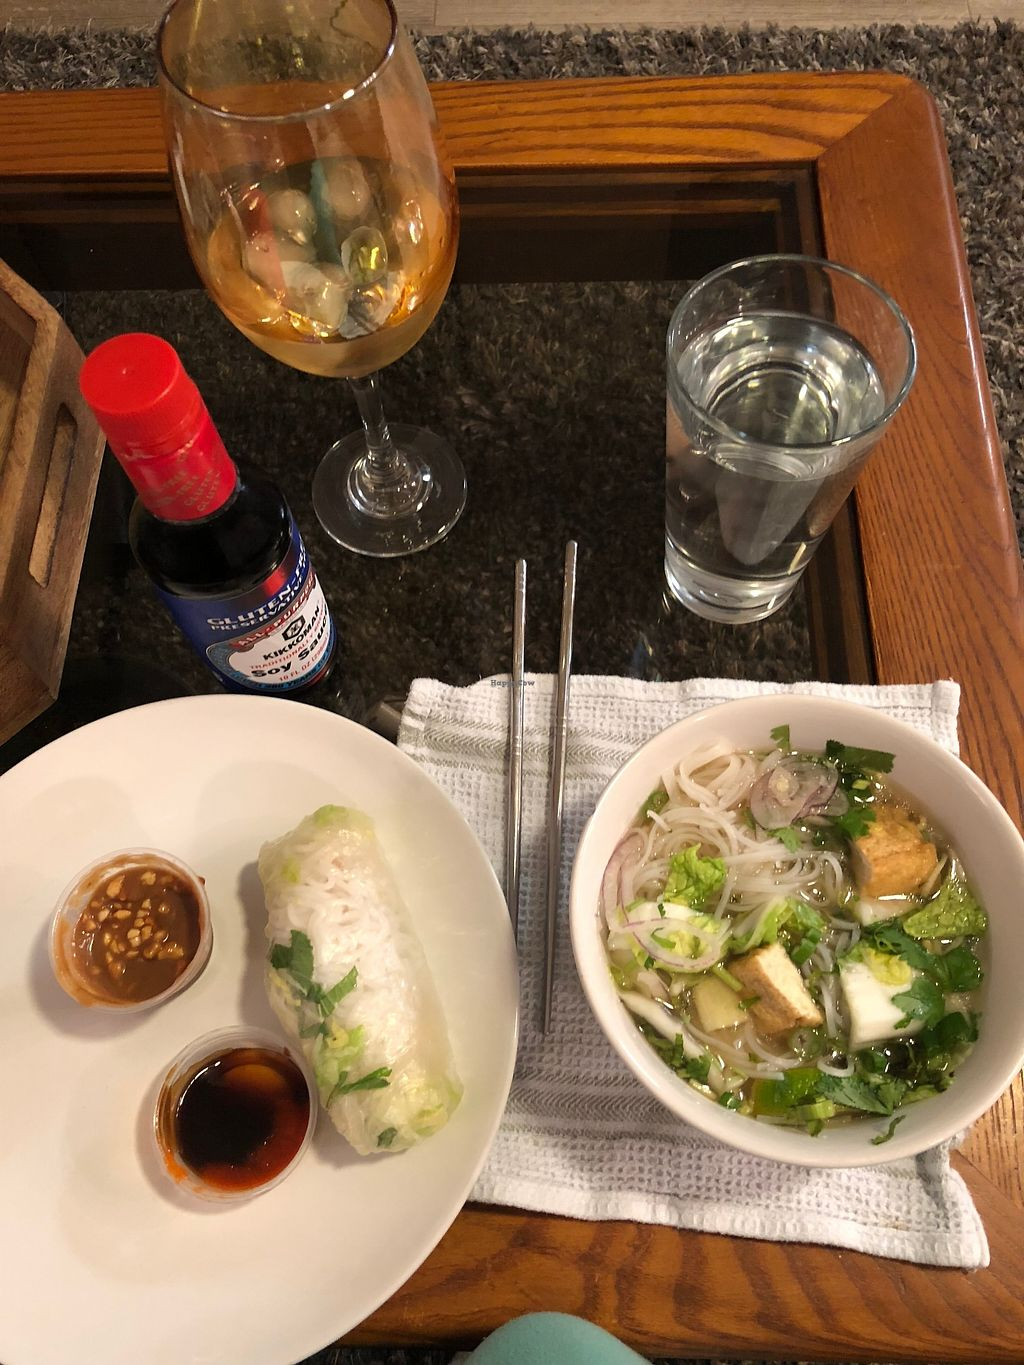 """Photo of Pho Fresh  by <a href=""""/members/profile/TaylorRenfree"""">TaylorRenfree</a> <br/>I got takeout and it was so amazing!! The quality and quantity match up at Pho Fresh <br/> January 18, 2018  - <a href='/contact/abuse/image/85361/348057'>Report</a>"""